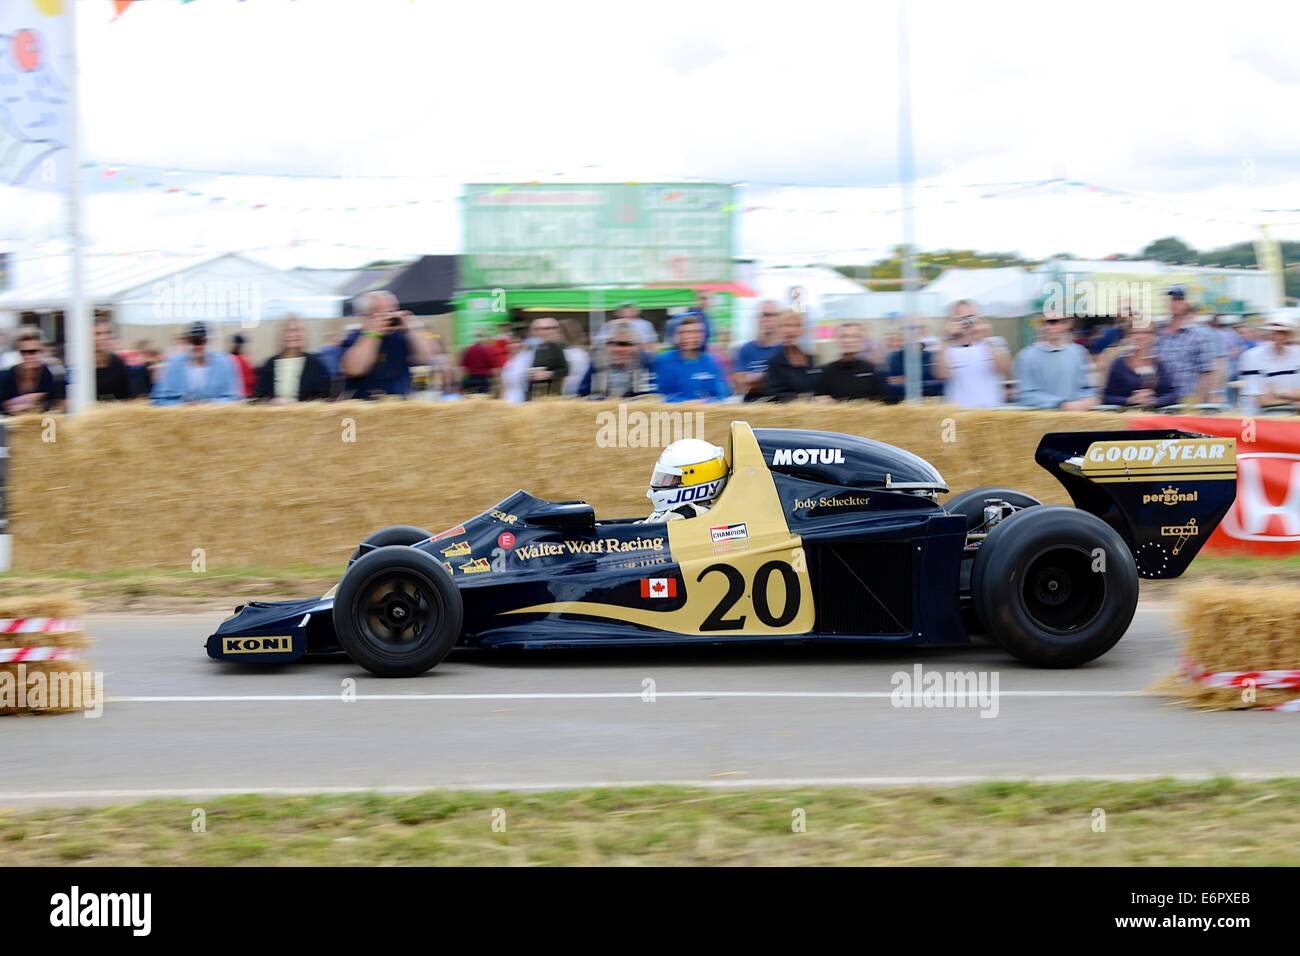 Wolf RW1 F1 car at Chris Evans' CarFest South in aid of Children In Need - Stock Image